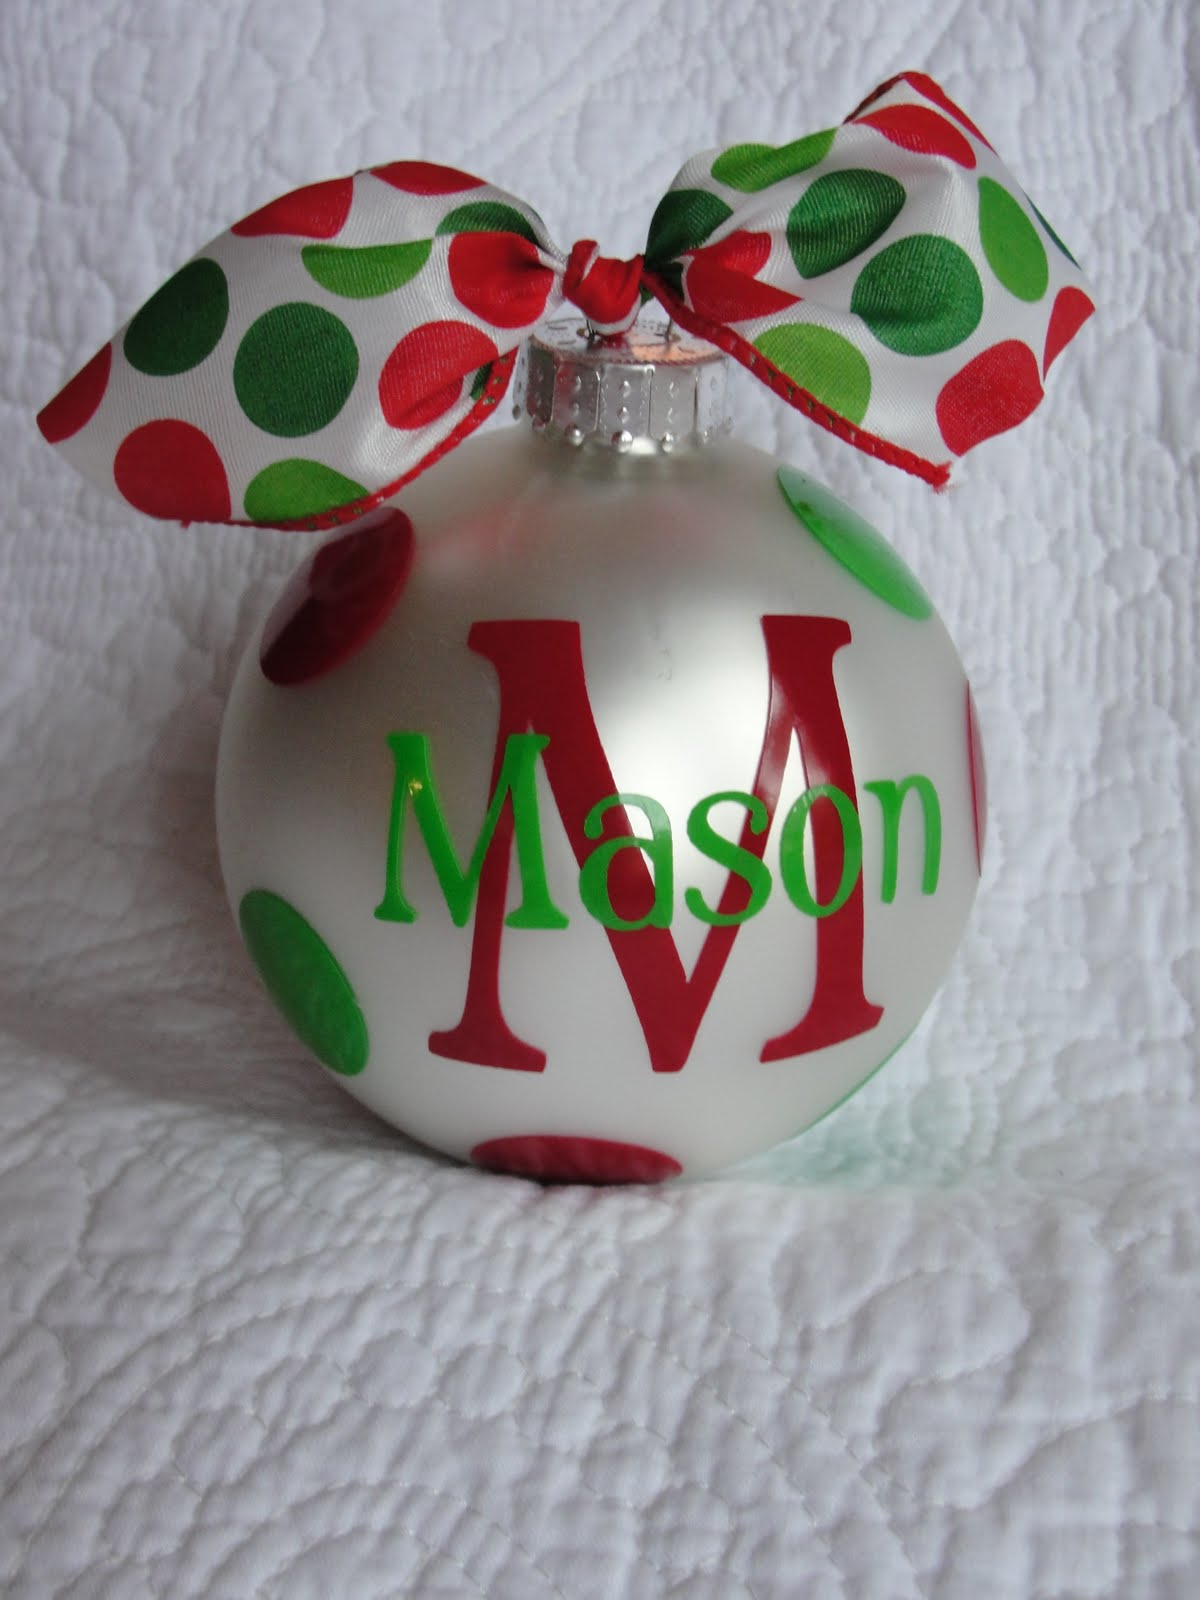 sassy sites more than 130 homemade ornaments